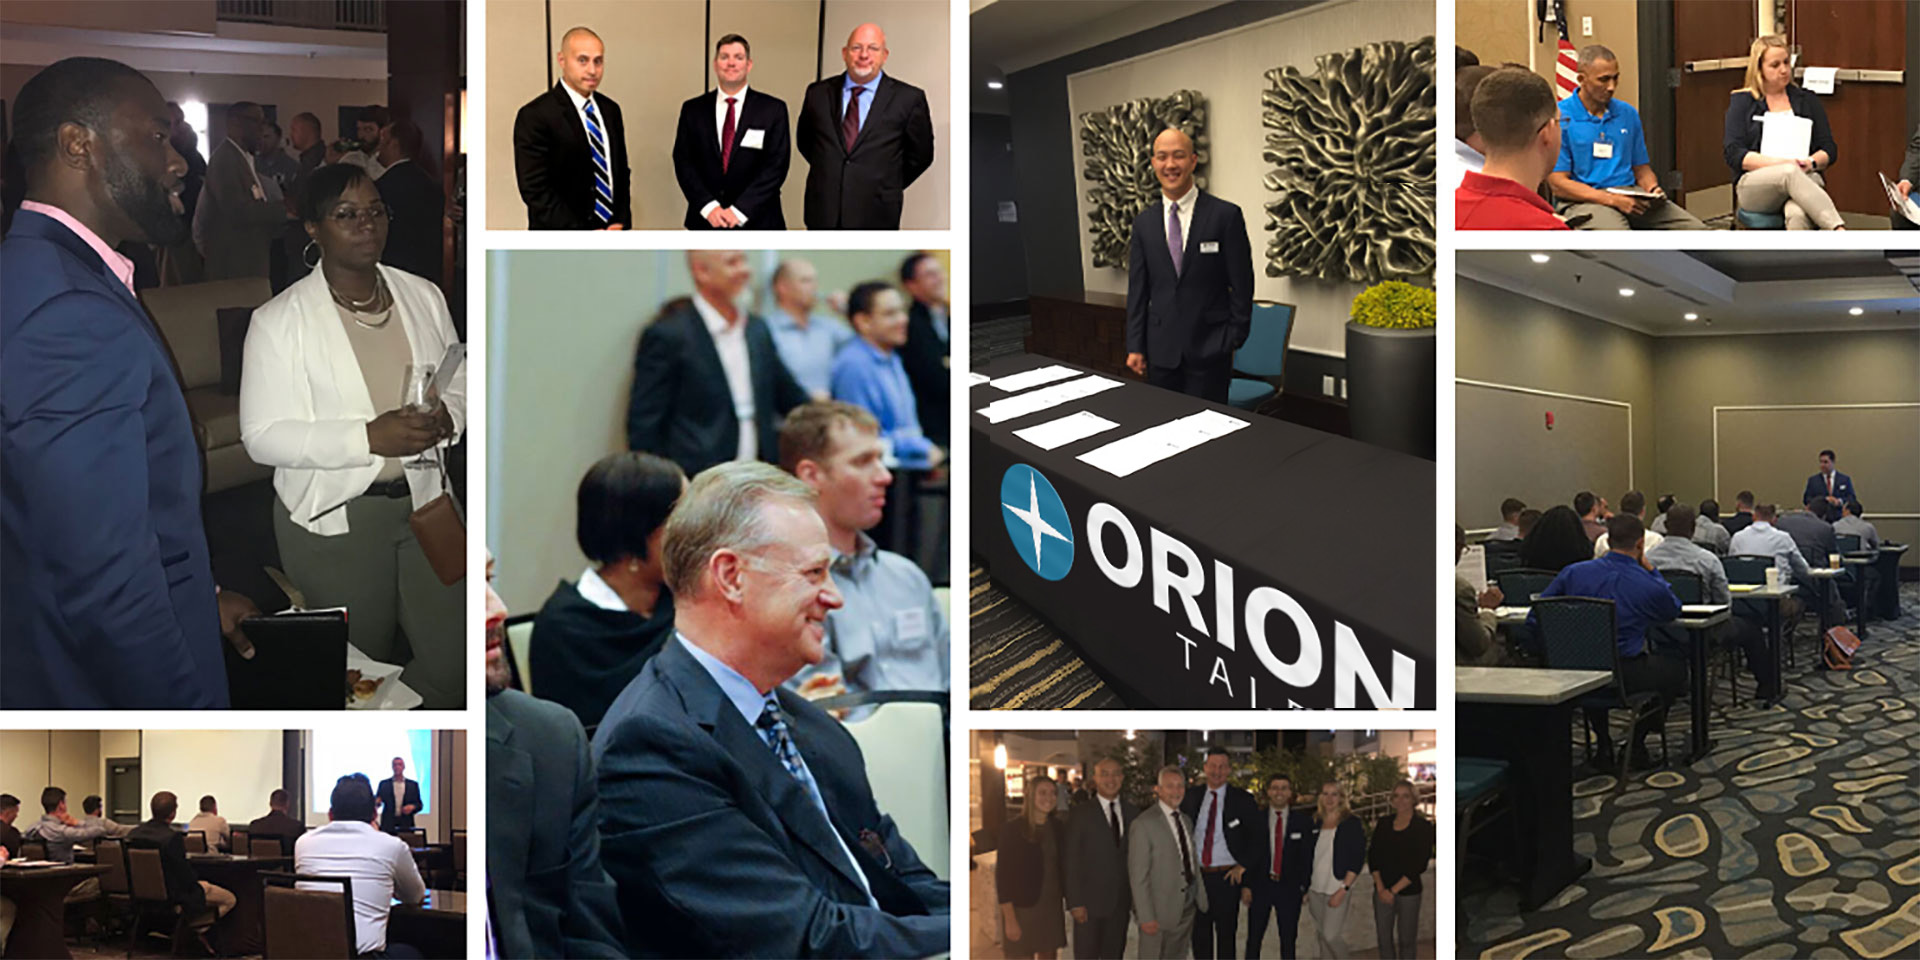 Orion Talent Hiring Conferences